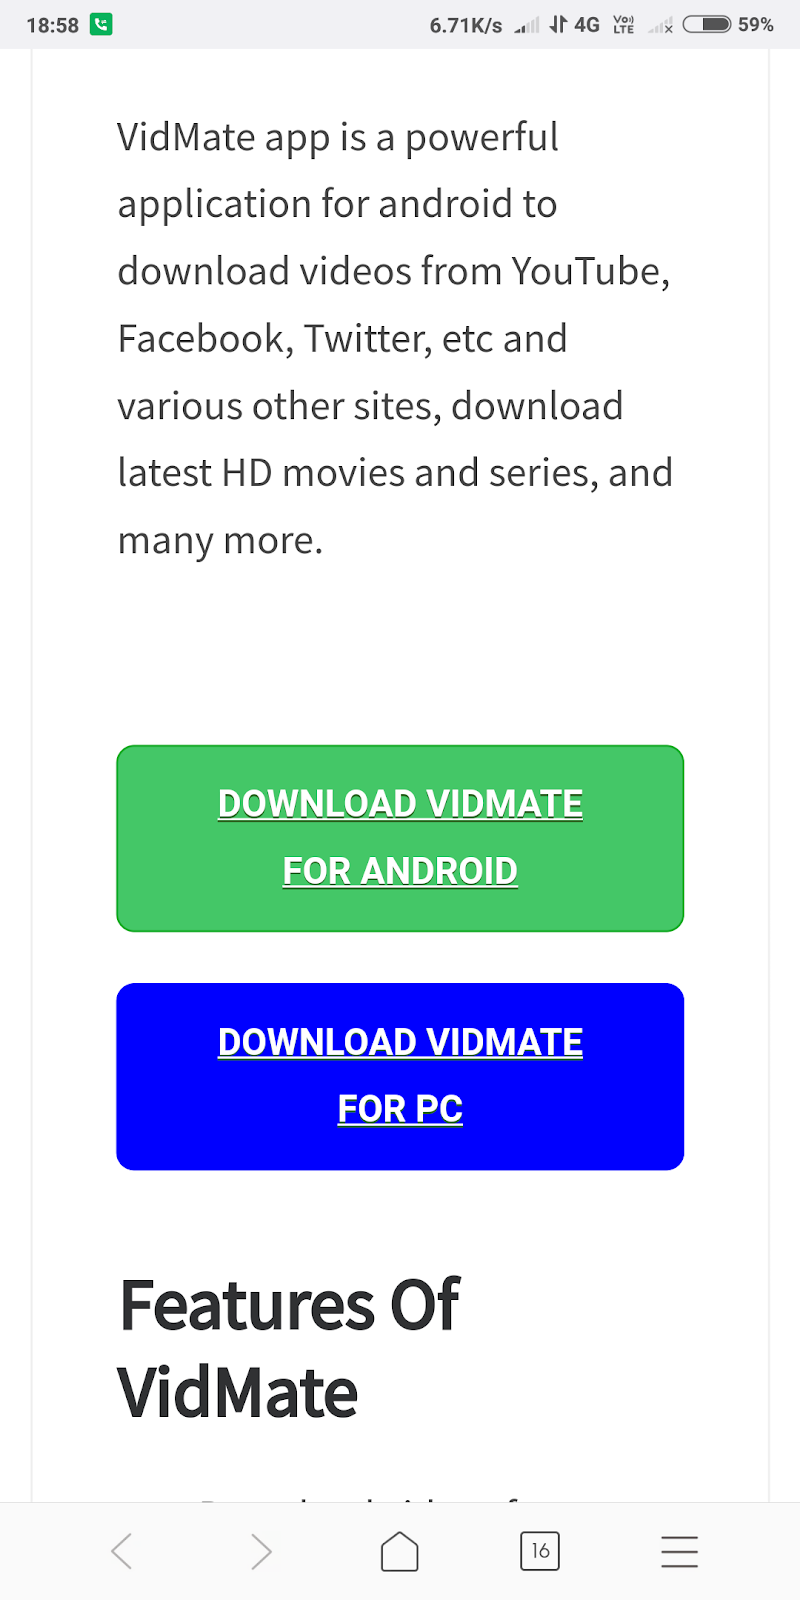 How to download vidmate app in 1minute  - Rk learning point